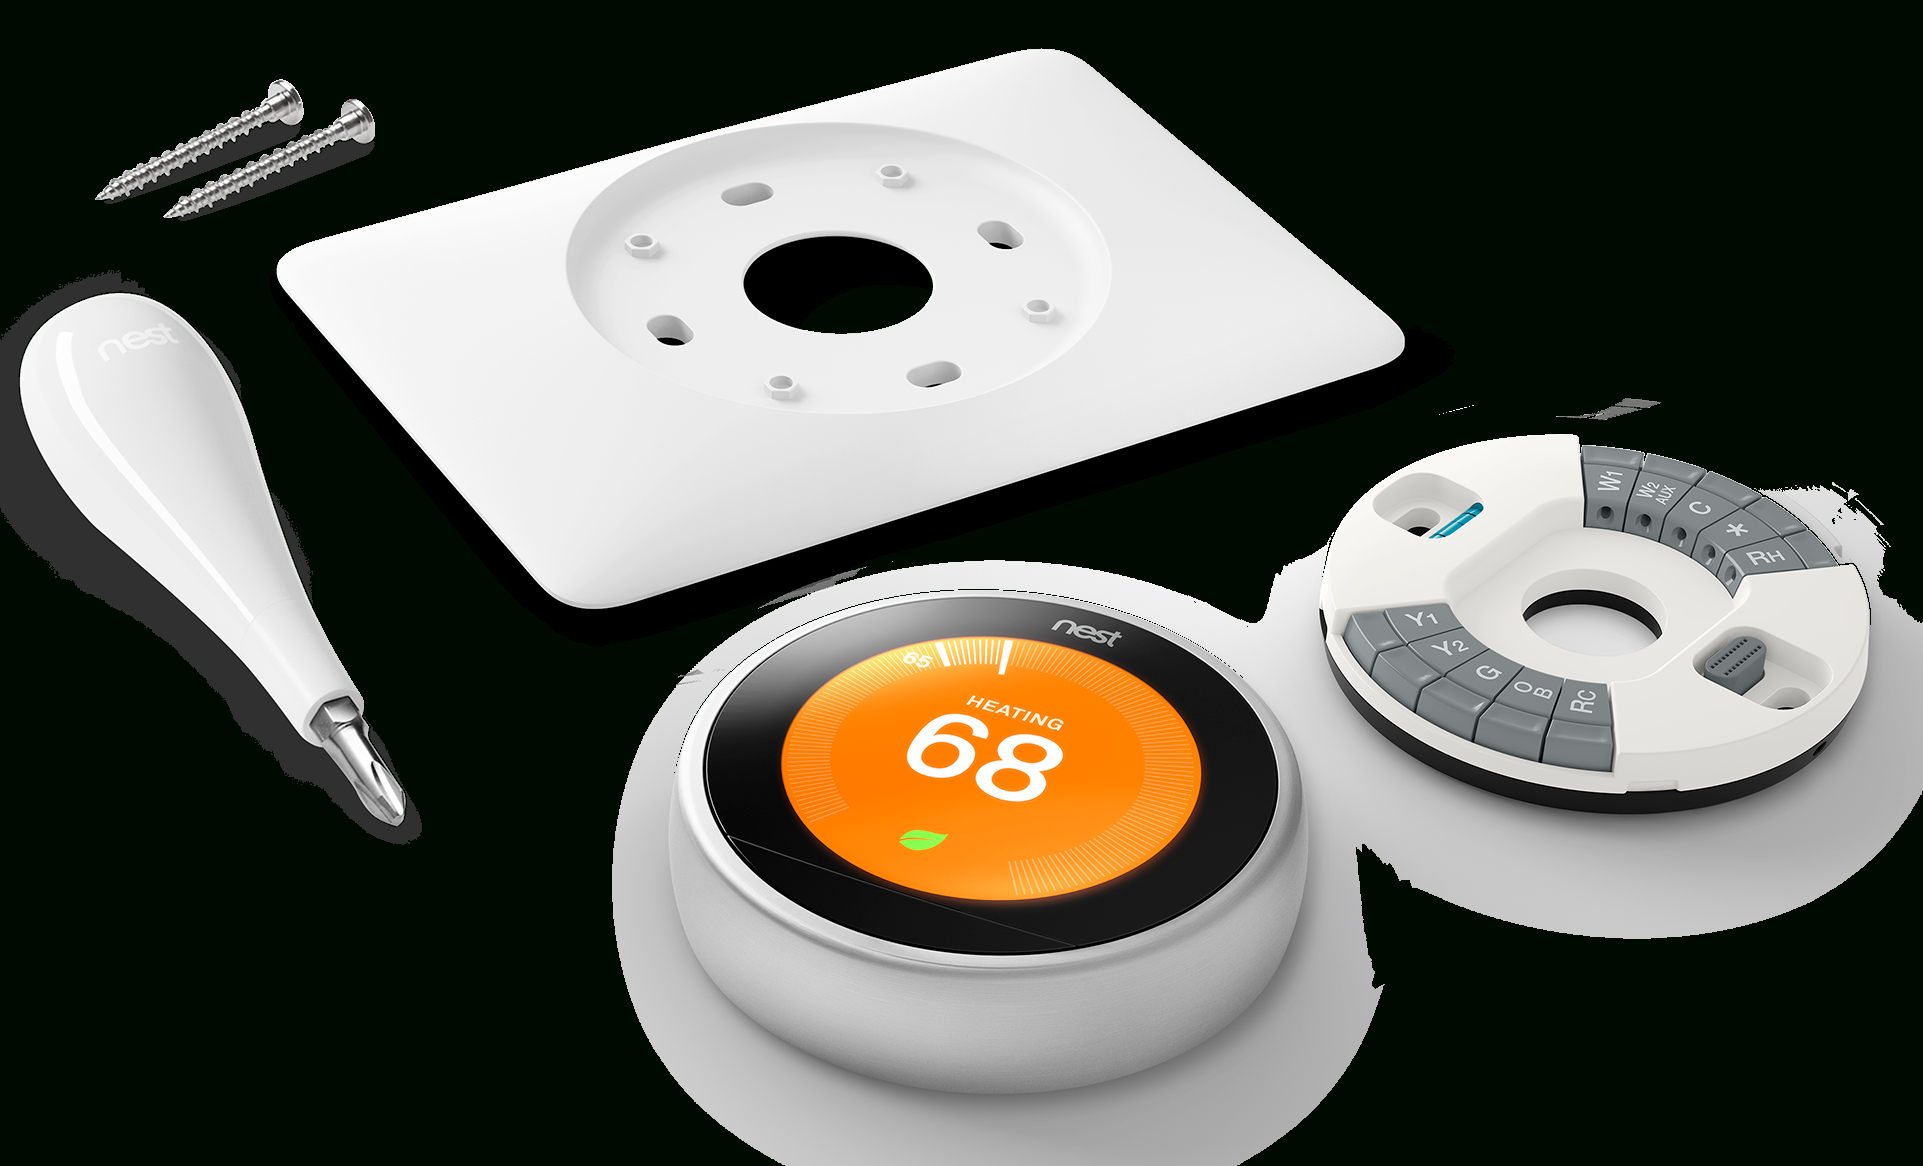 How To Install Your Nest Thermostat - Nest Gen 3 Thermostat Wiring Diagram